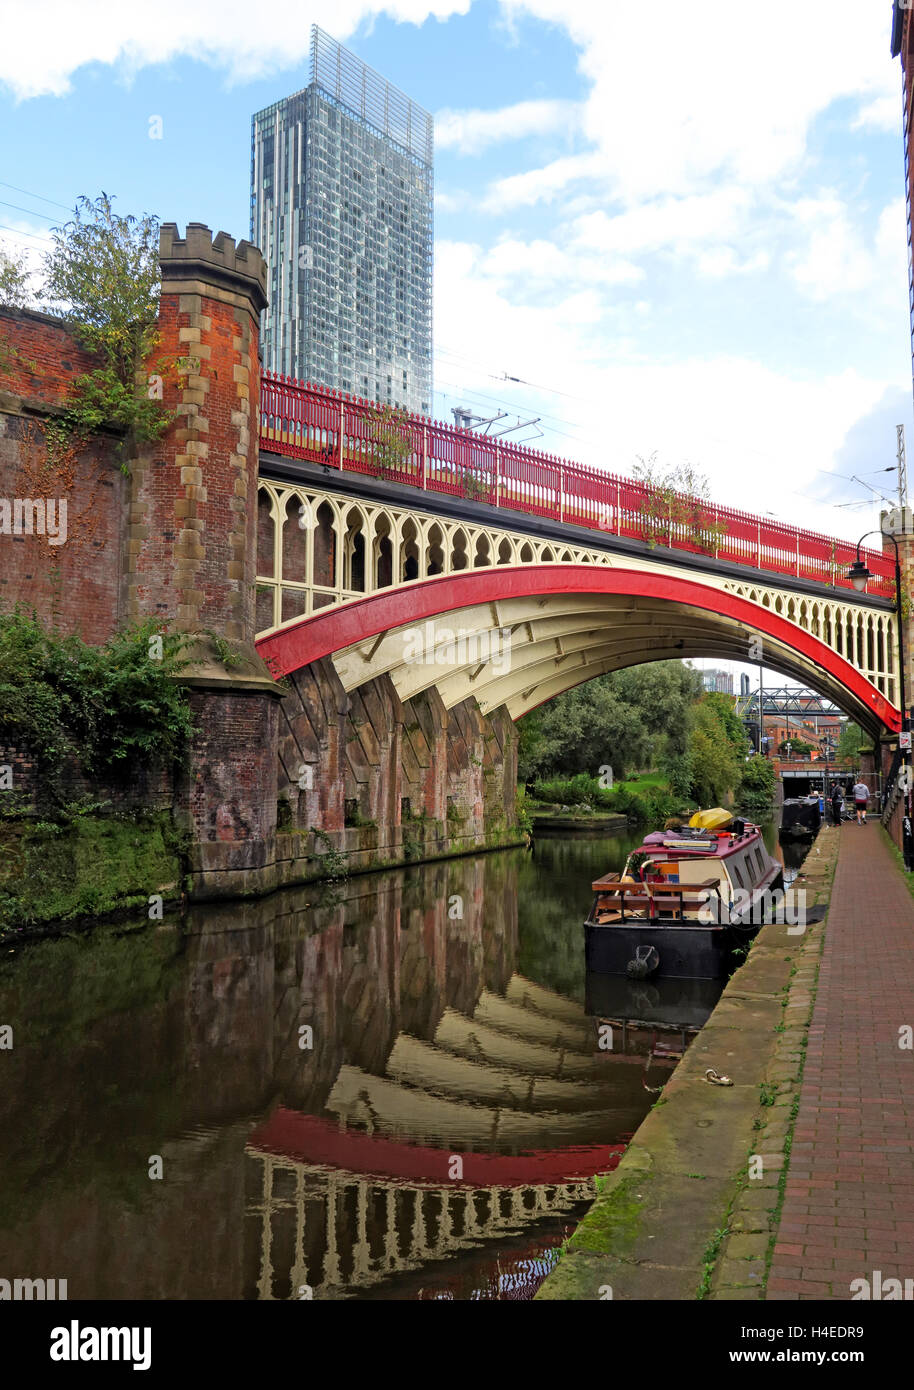 Rochdale Canal & Hilton Hotel, historic railway bridge, Castlefields, Manchester, Lancs, North West England, - Stock Image